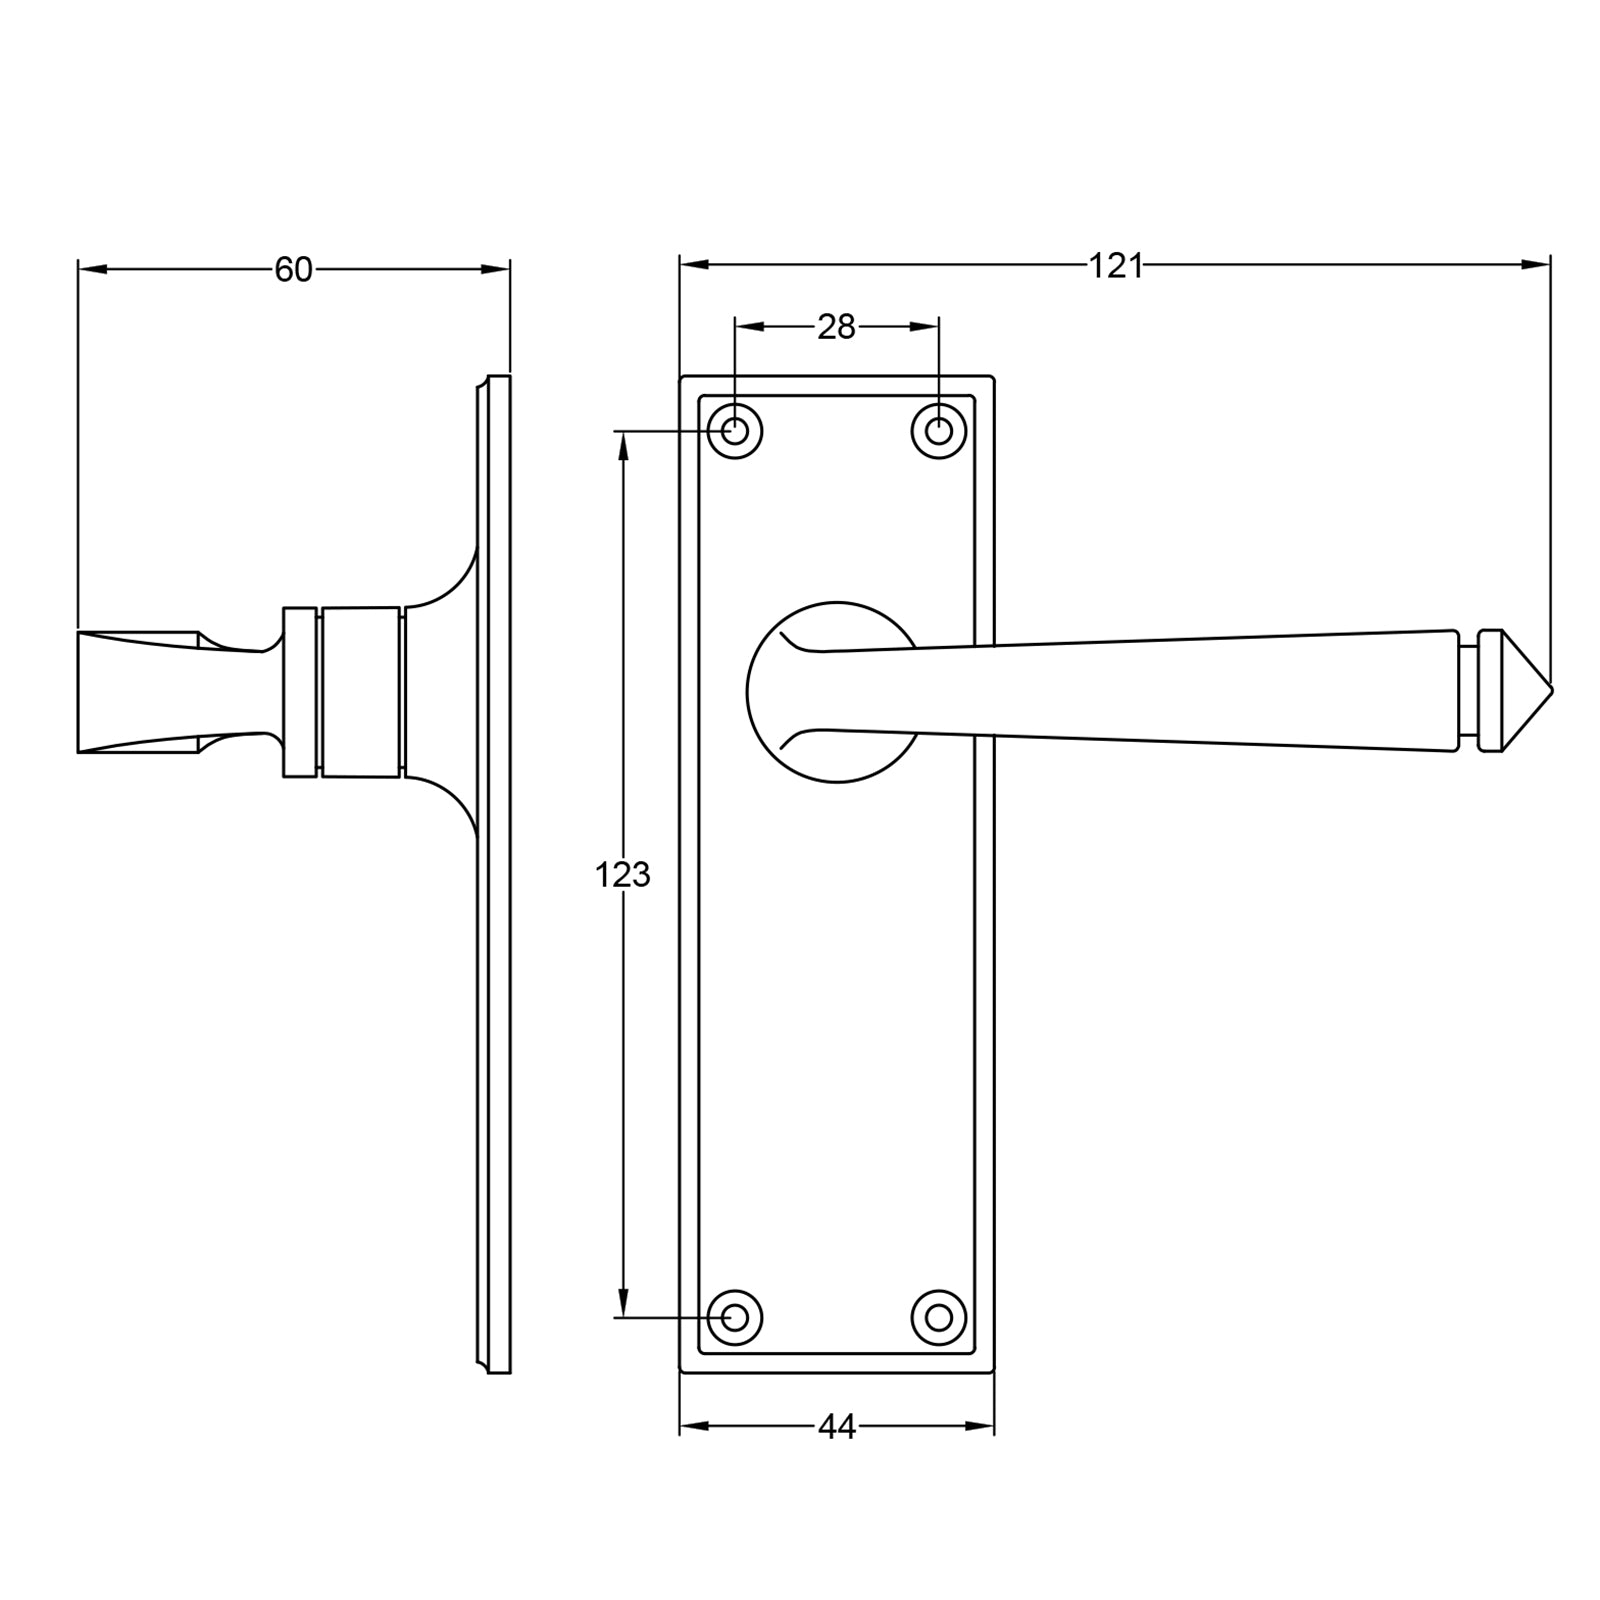 Avon lever handle dimension drawing SHOW